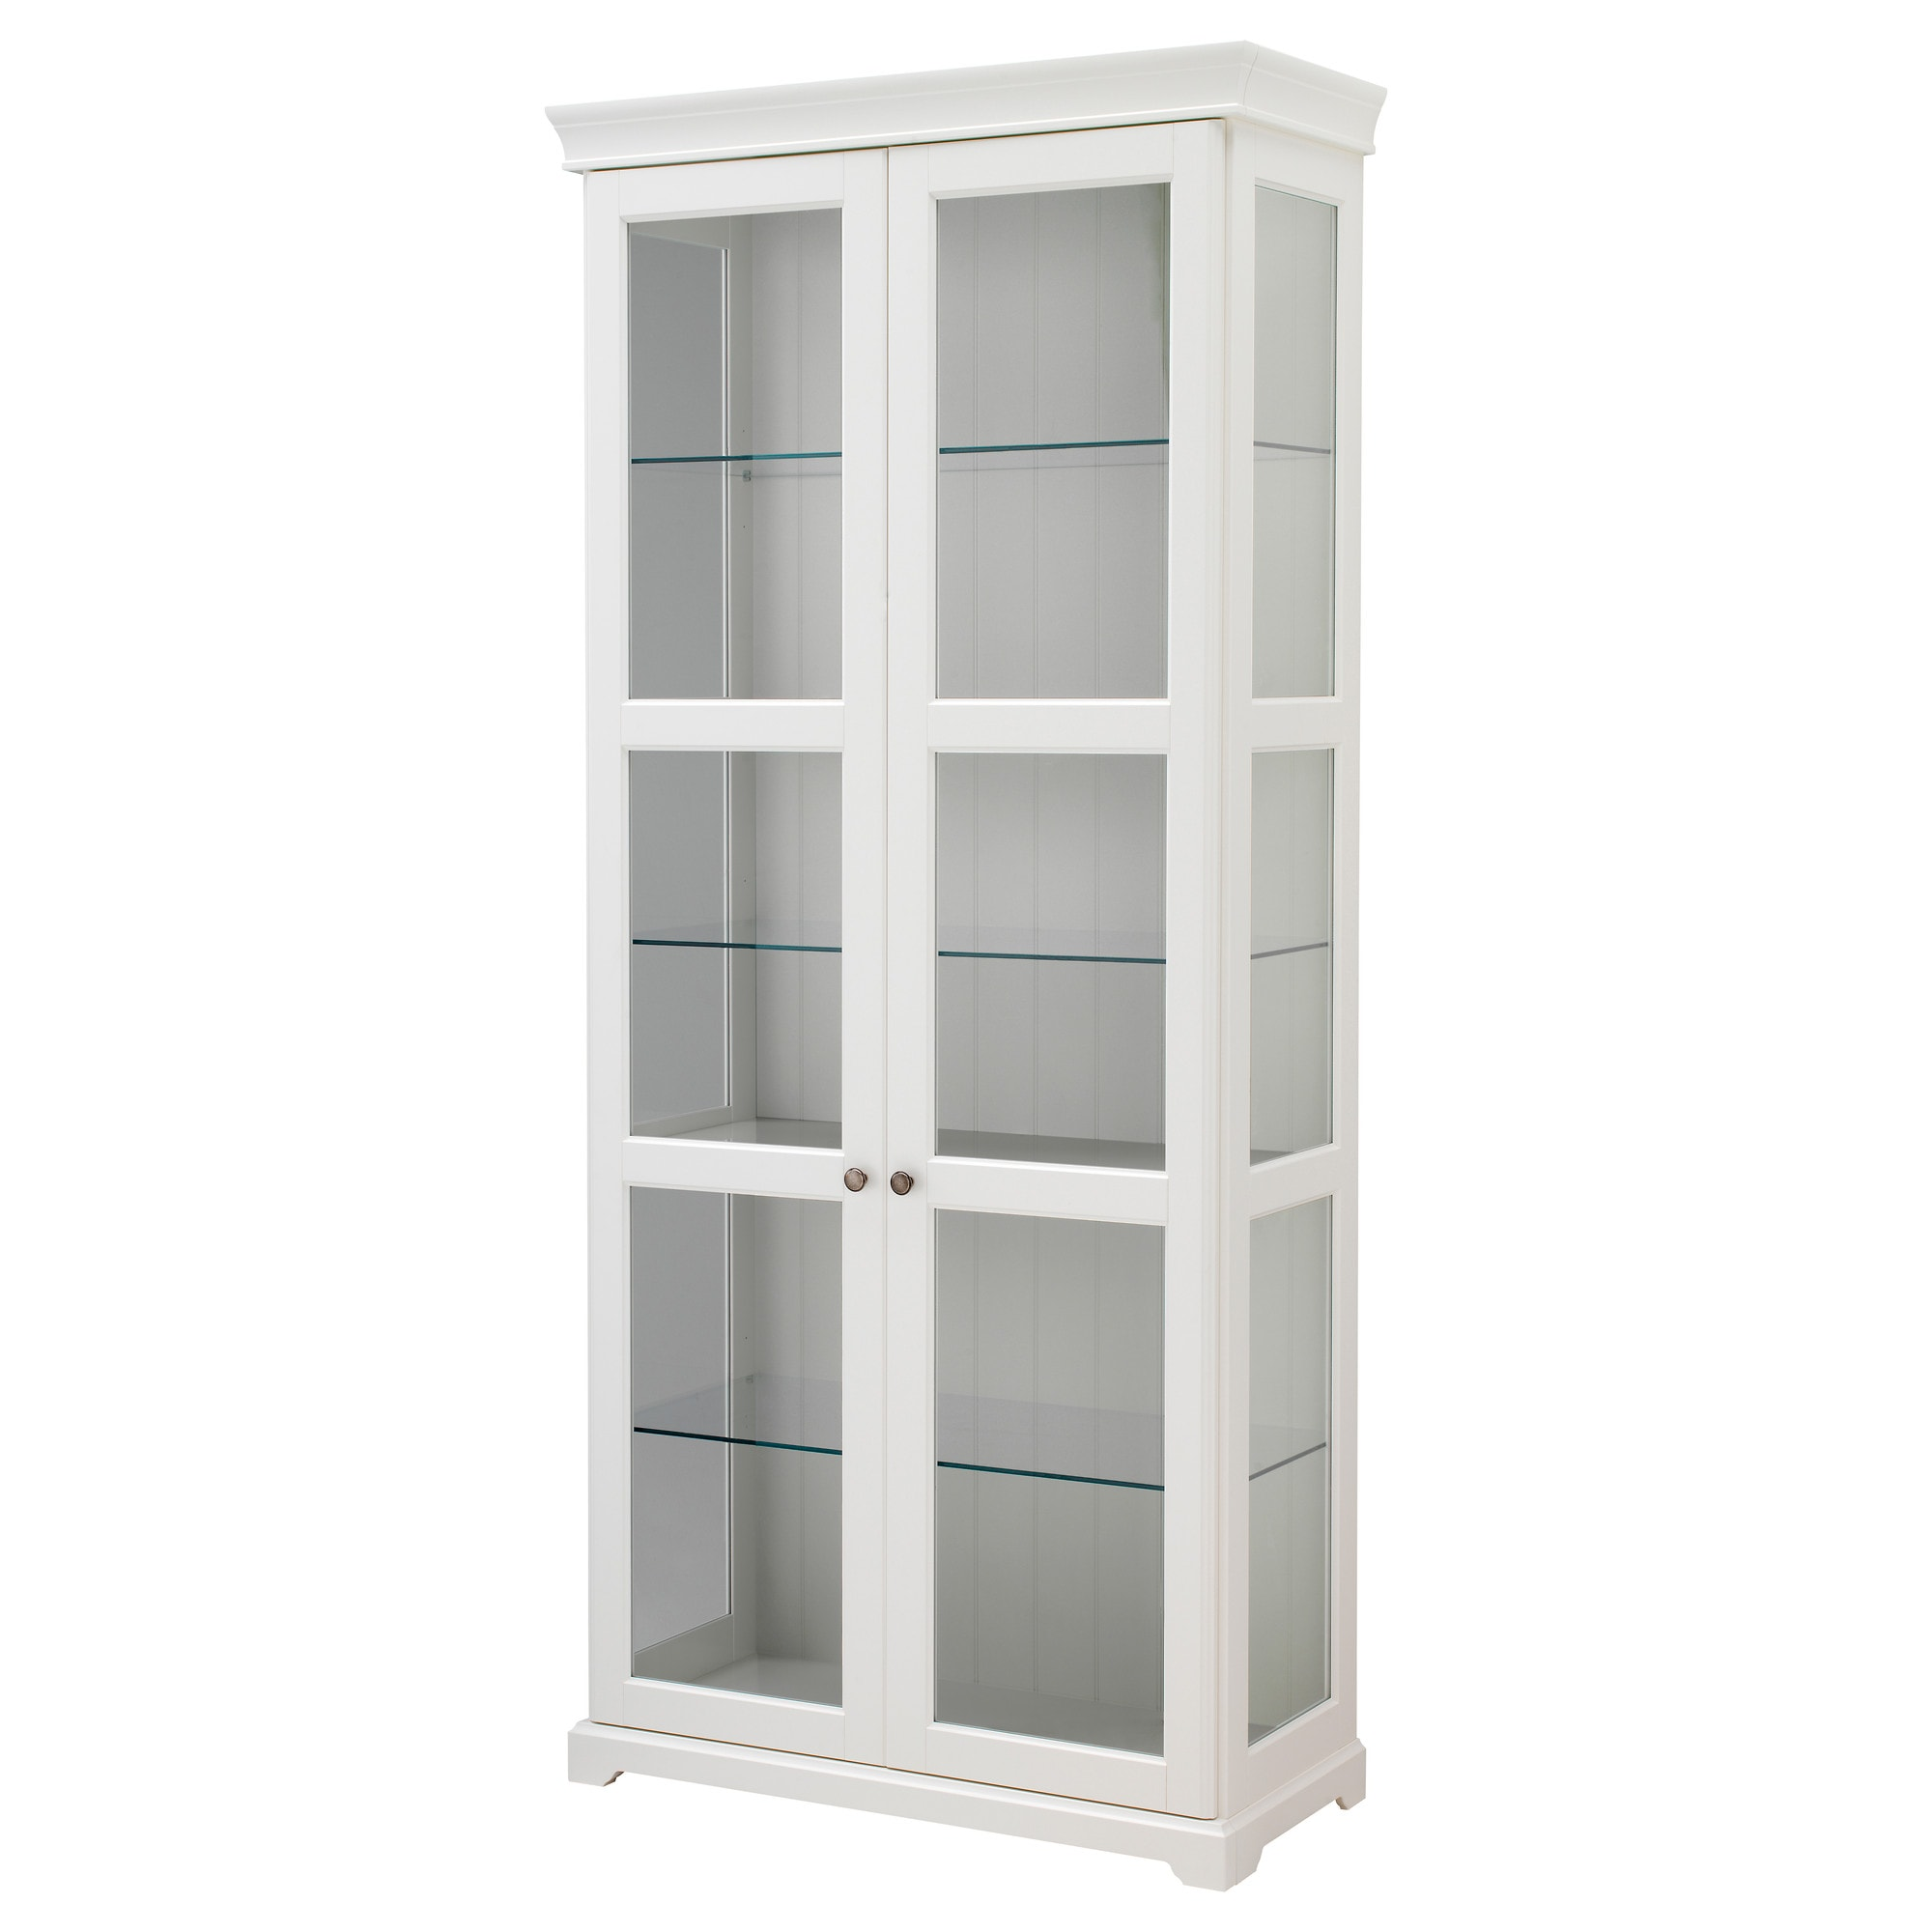 Cabinets & Display Cases - IKEA